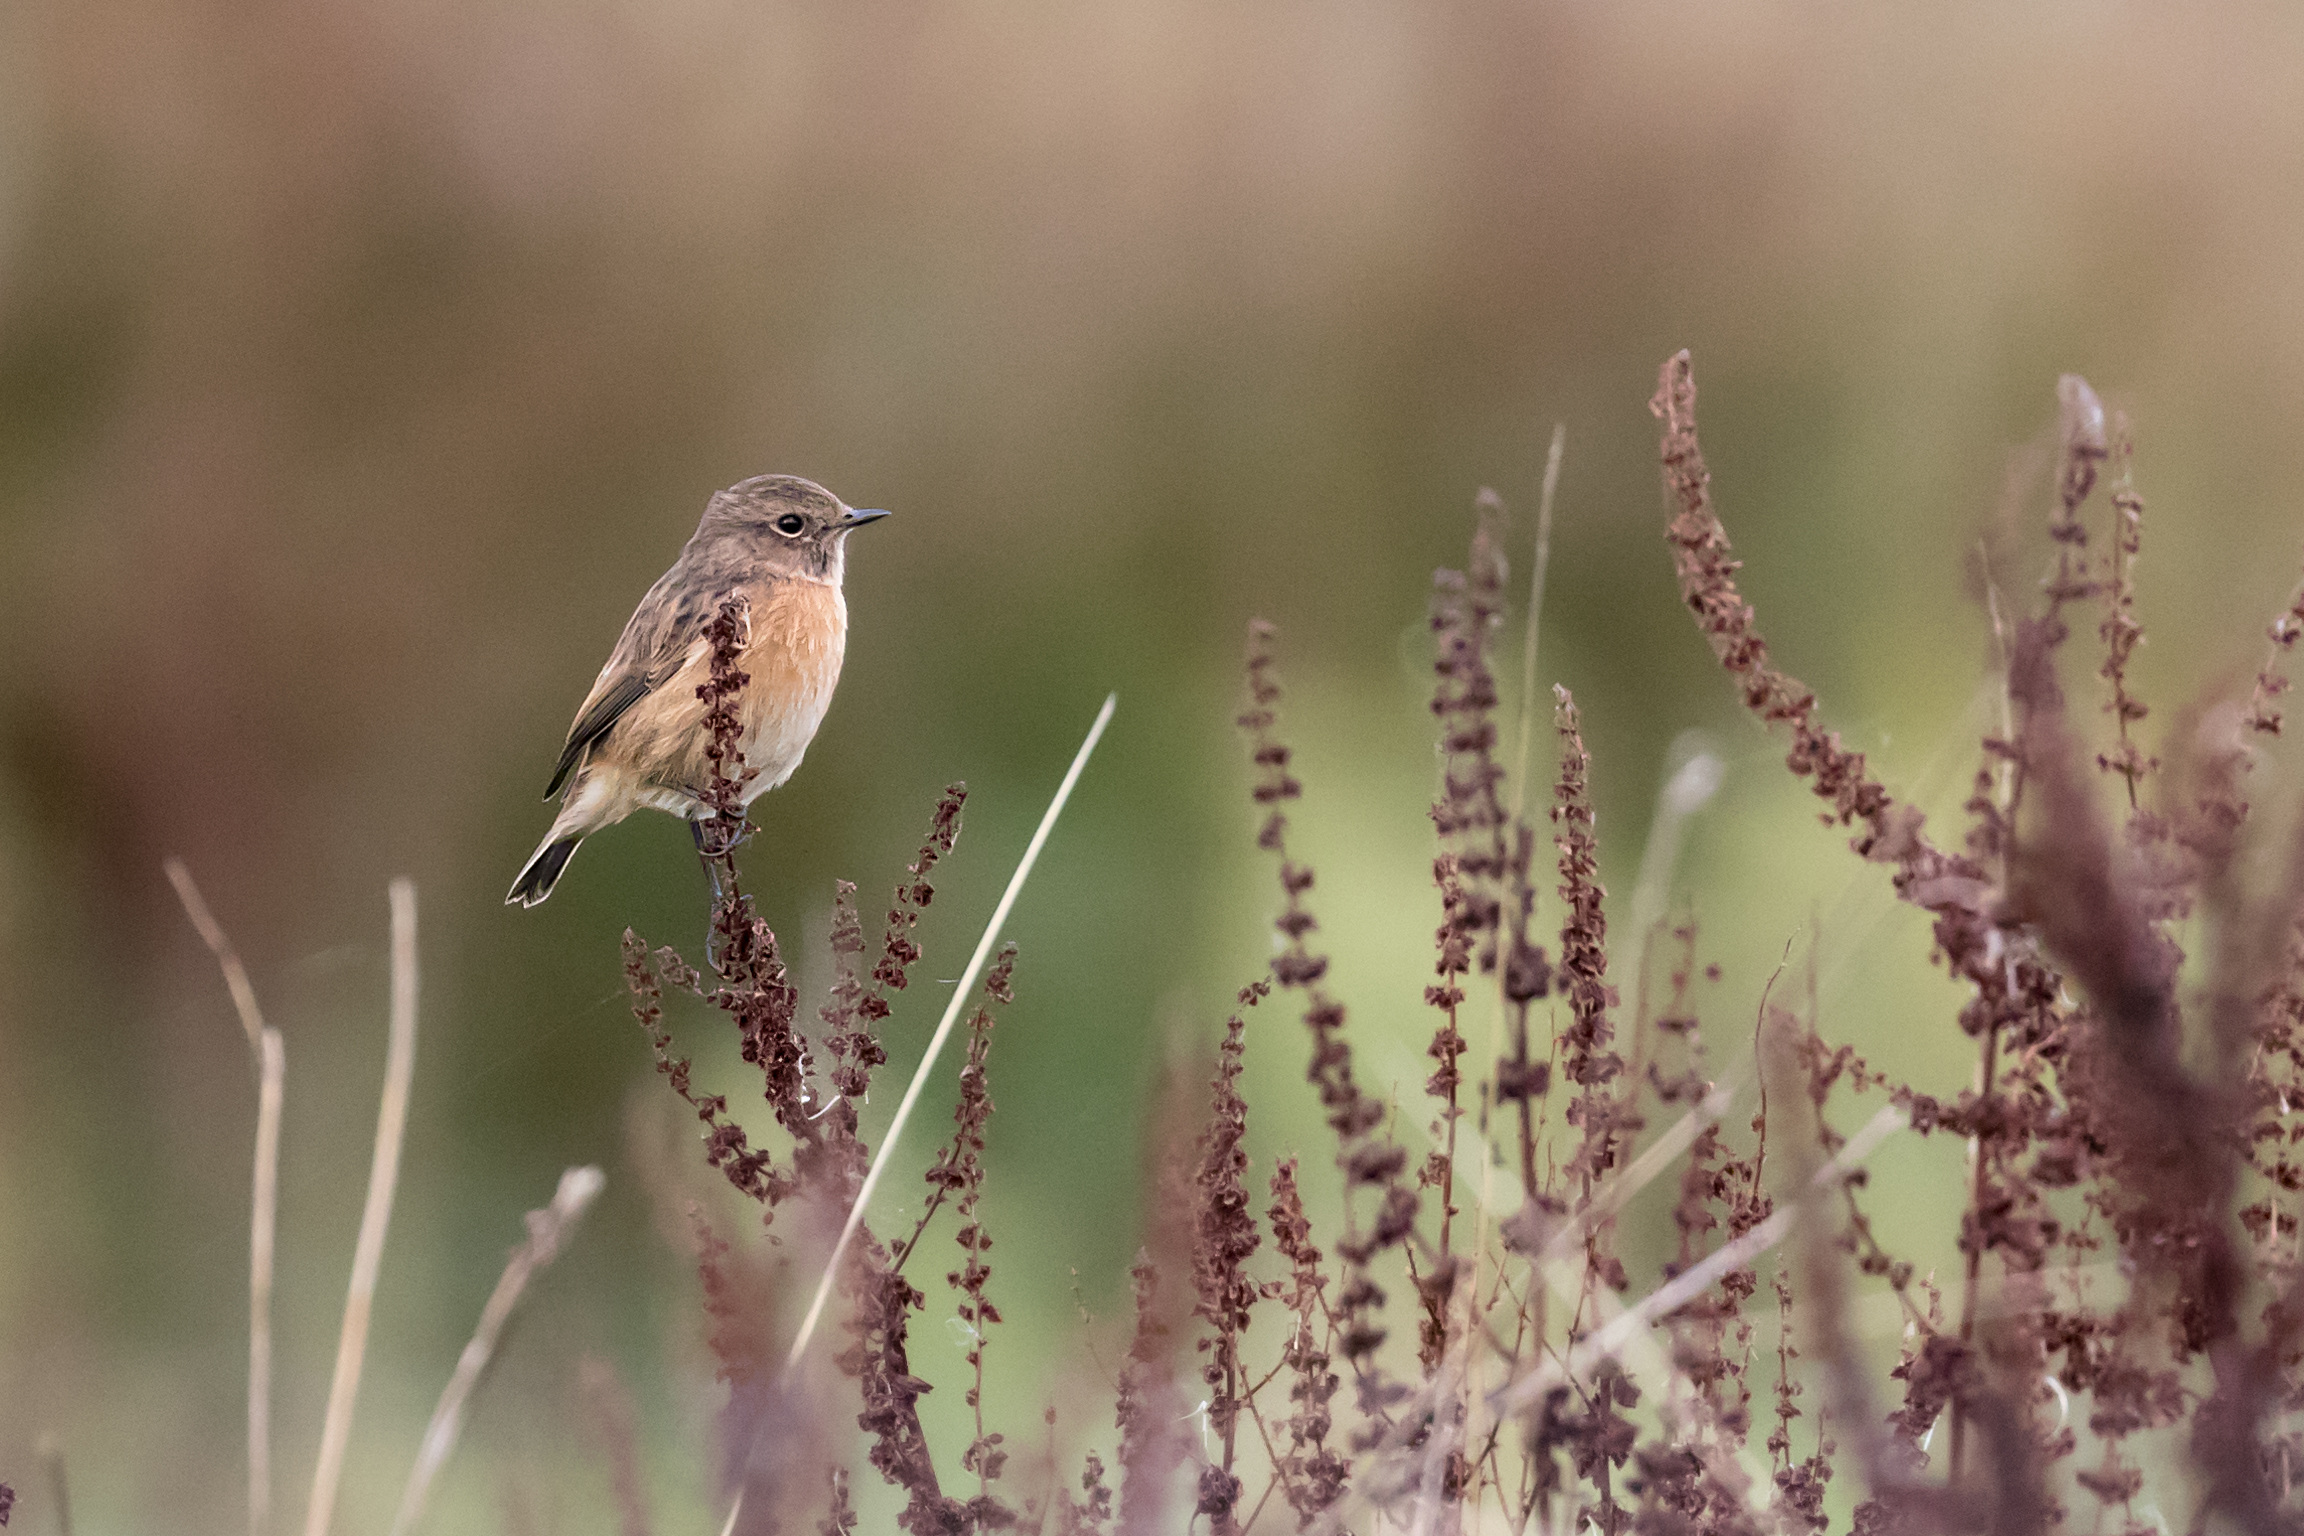 Female Stonechat (low quality image!)